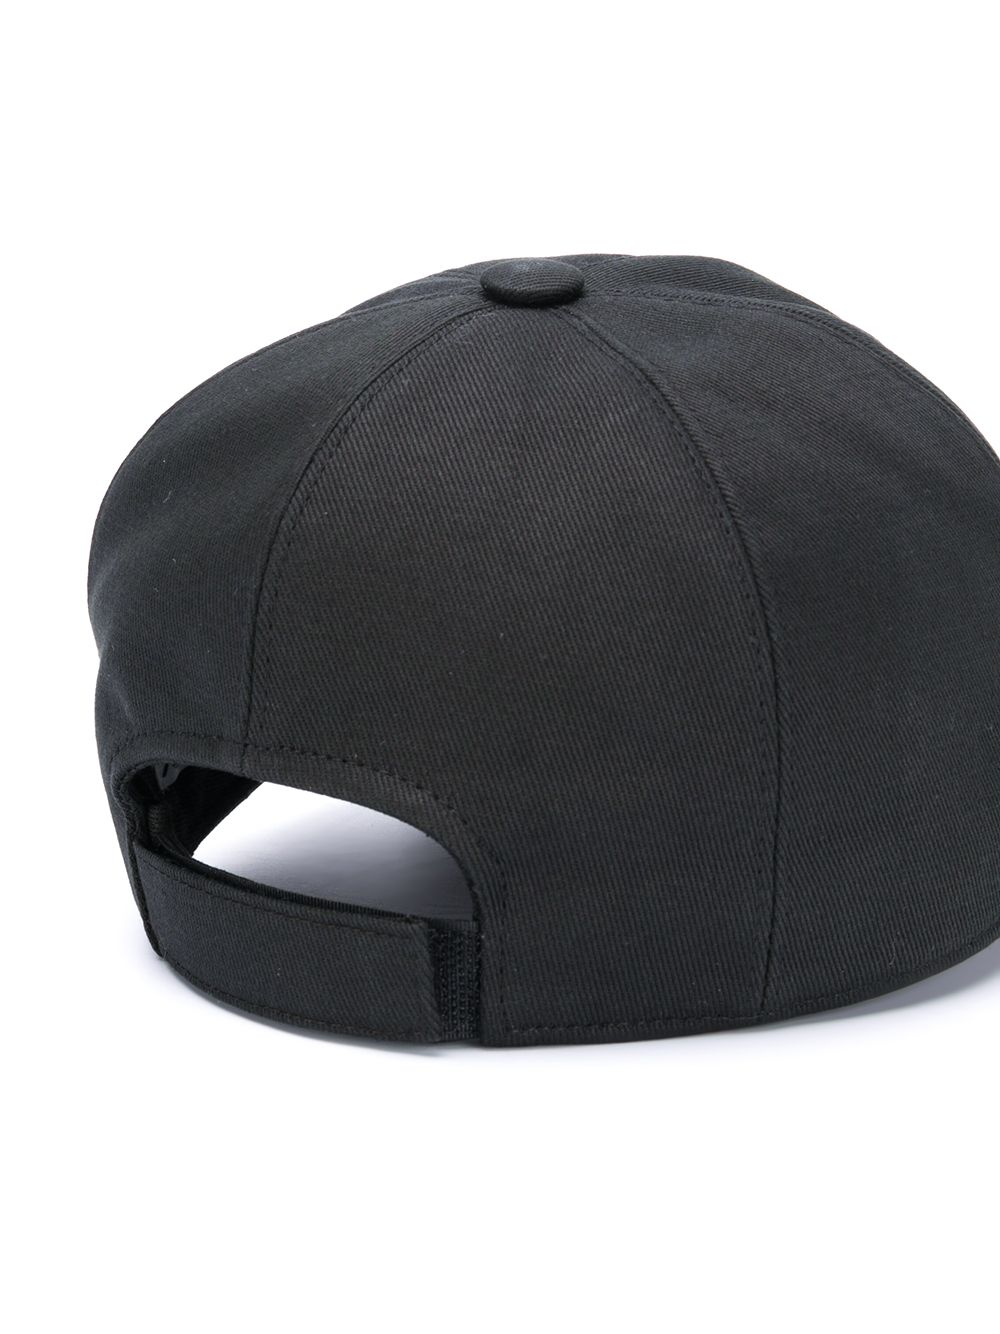 GIVENCHY KIDS Paris Logo Cap Black